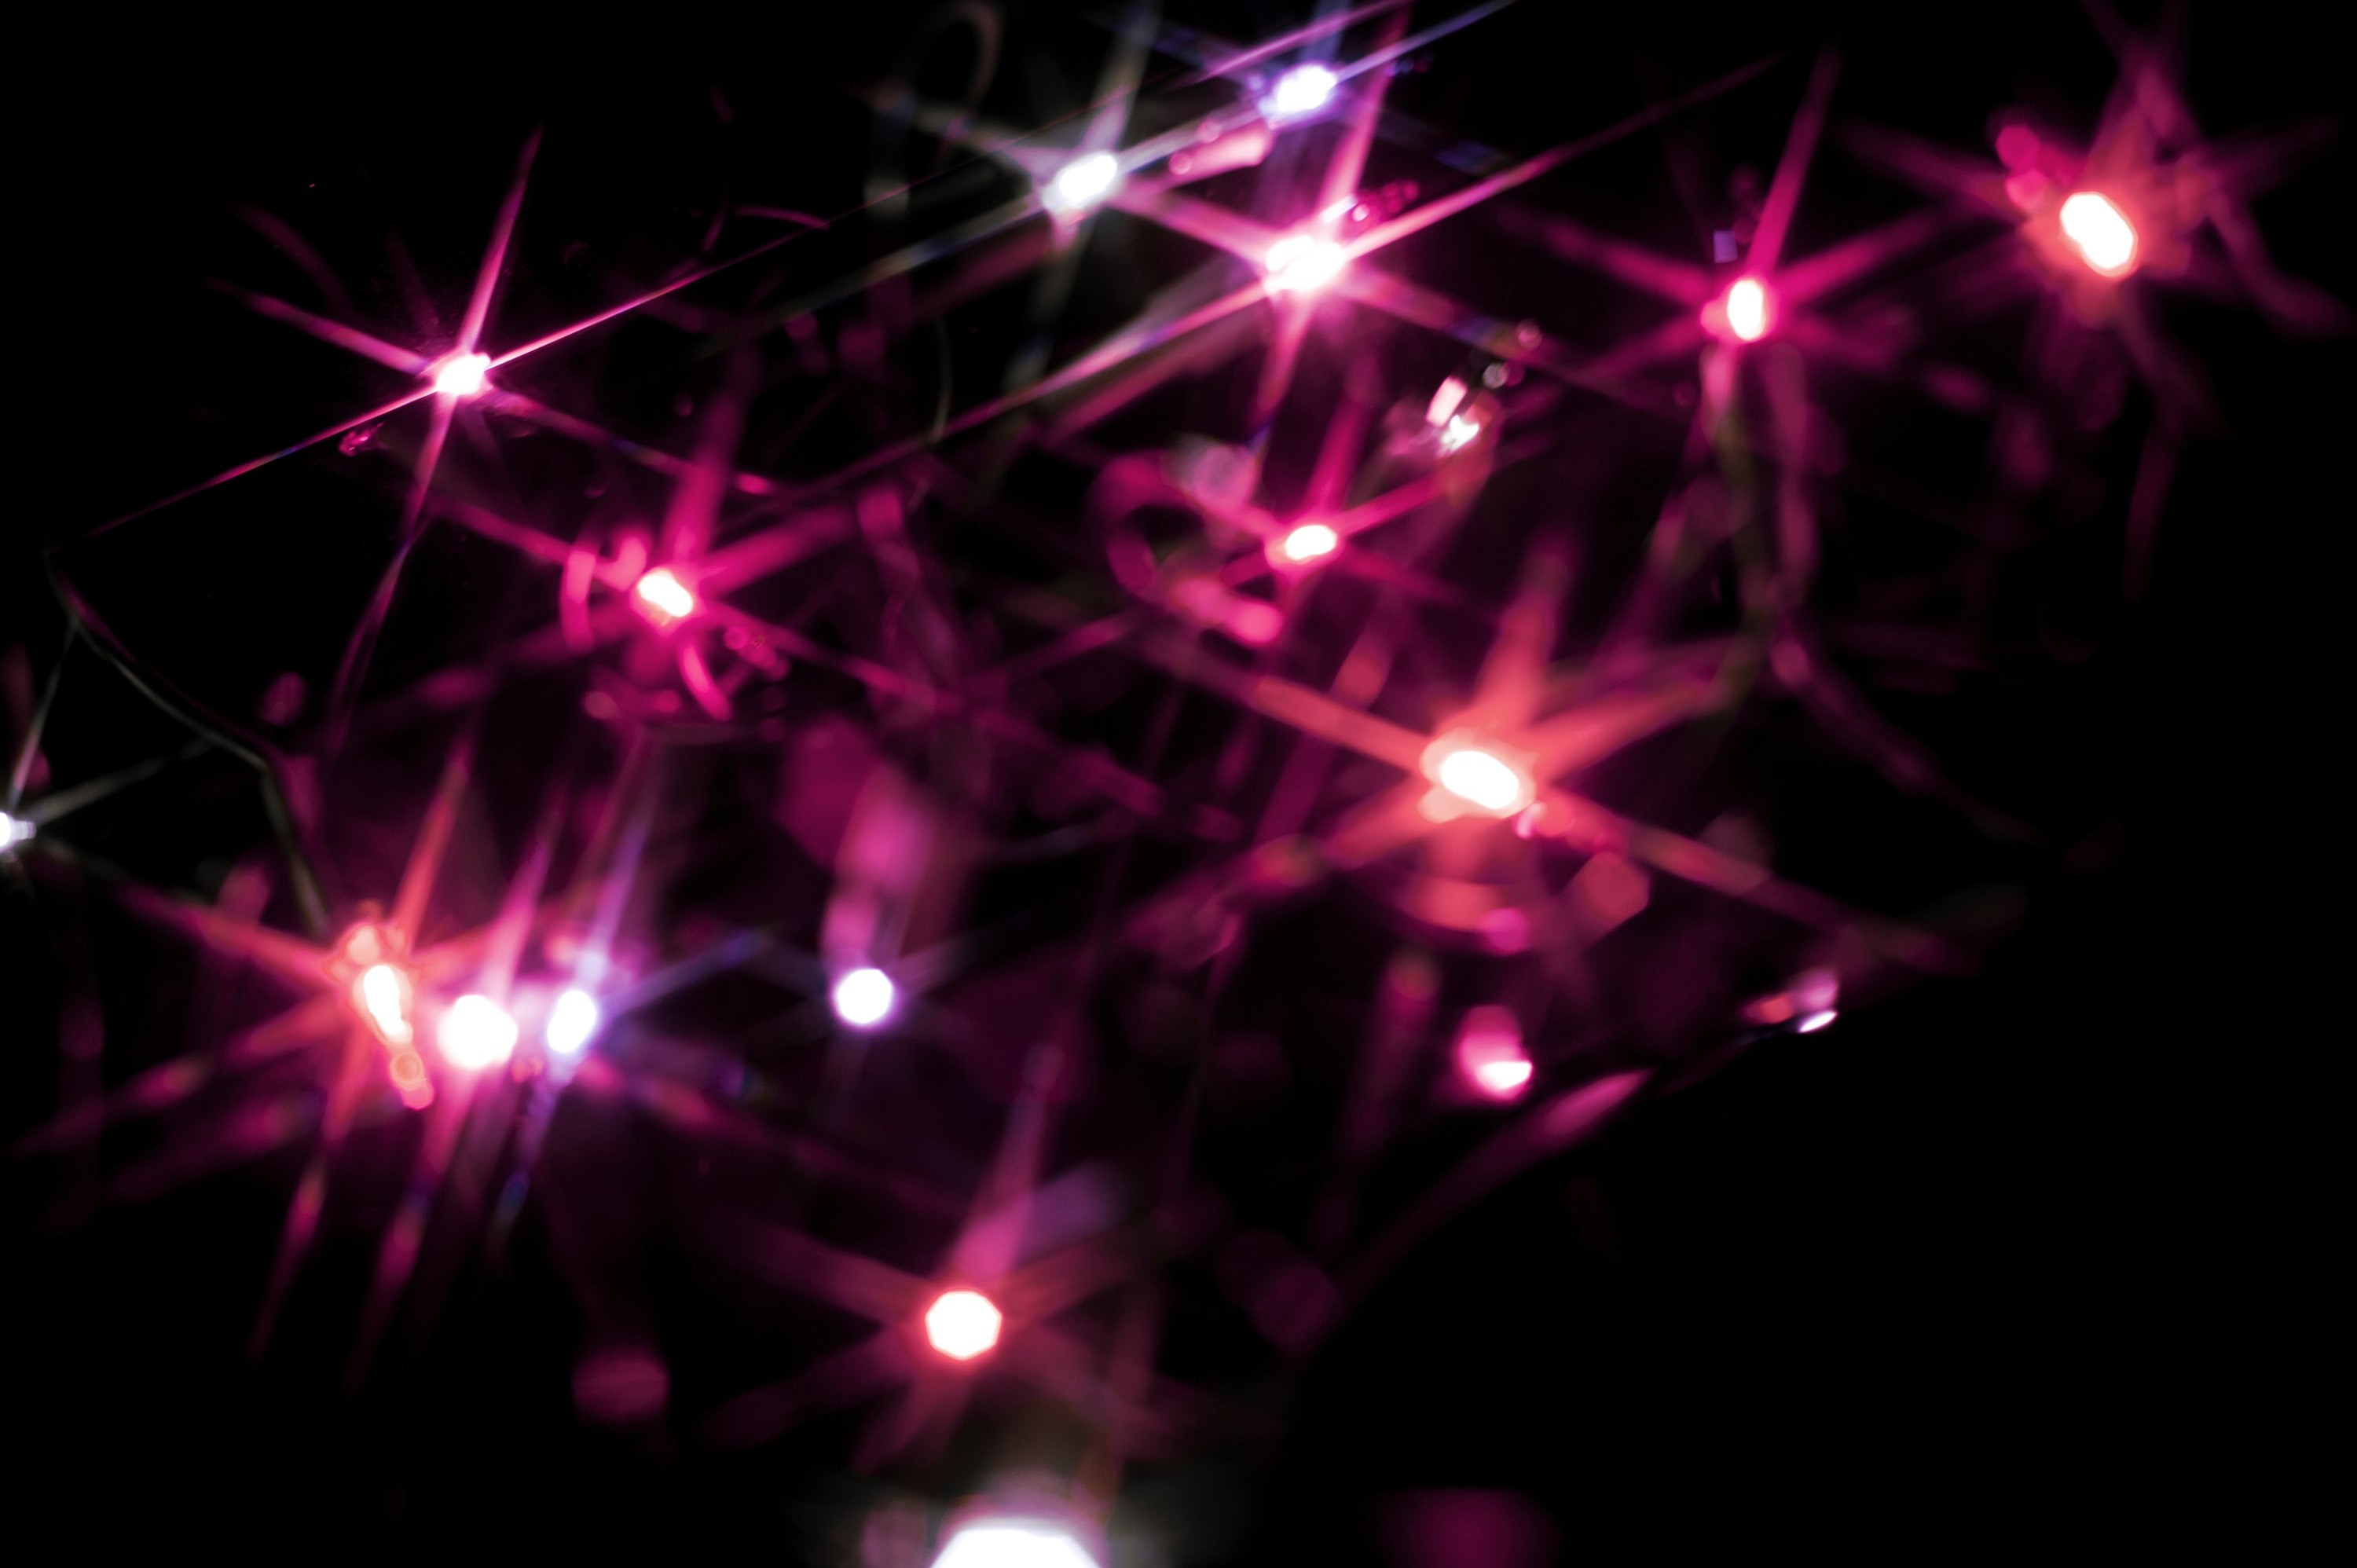 Photo of Christmas background of pink starburst lights | Free ...